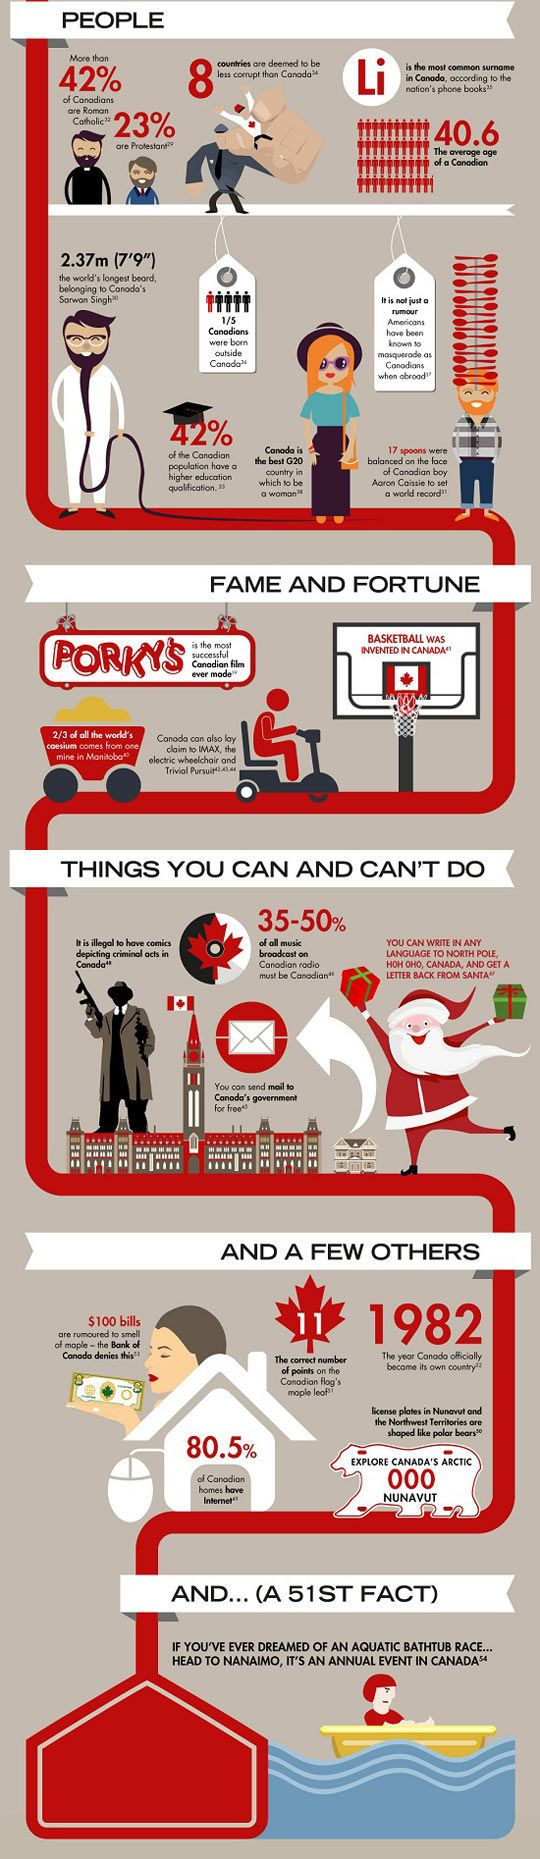 Cool facts about Canada.